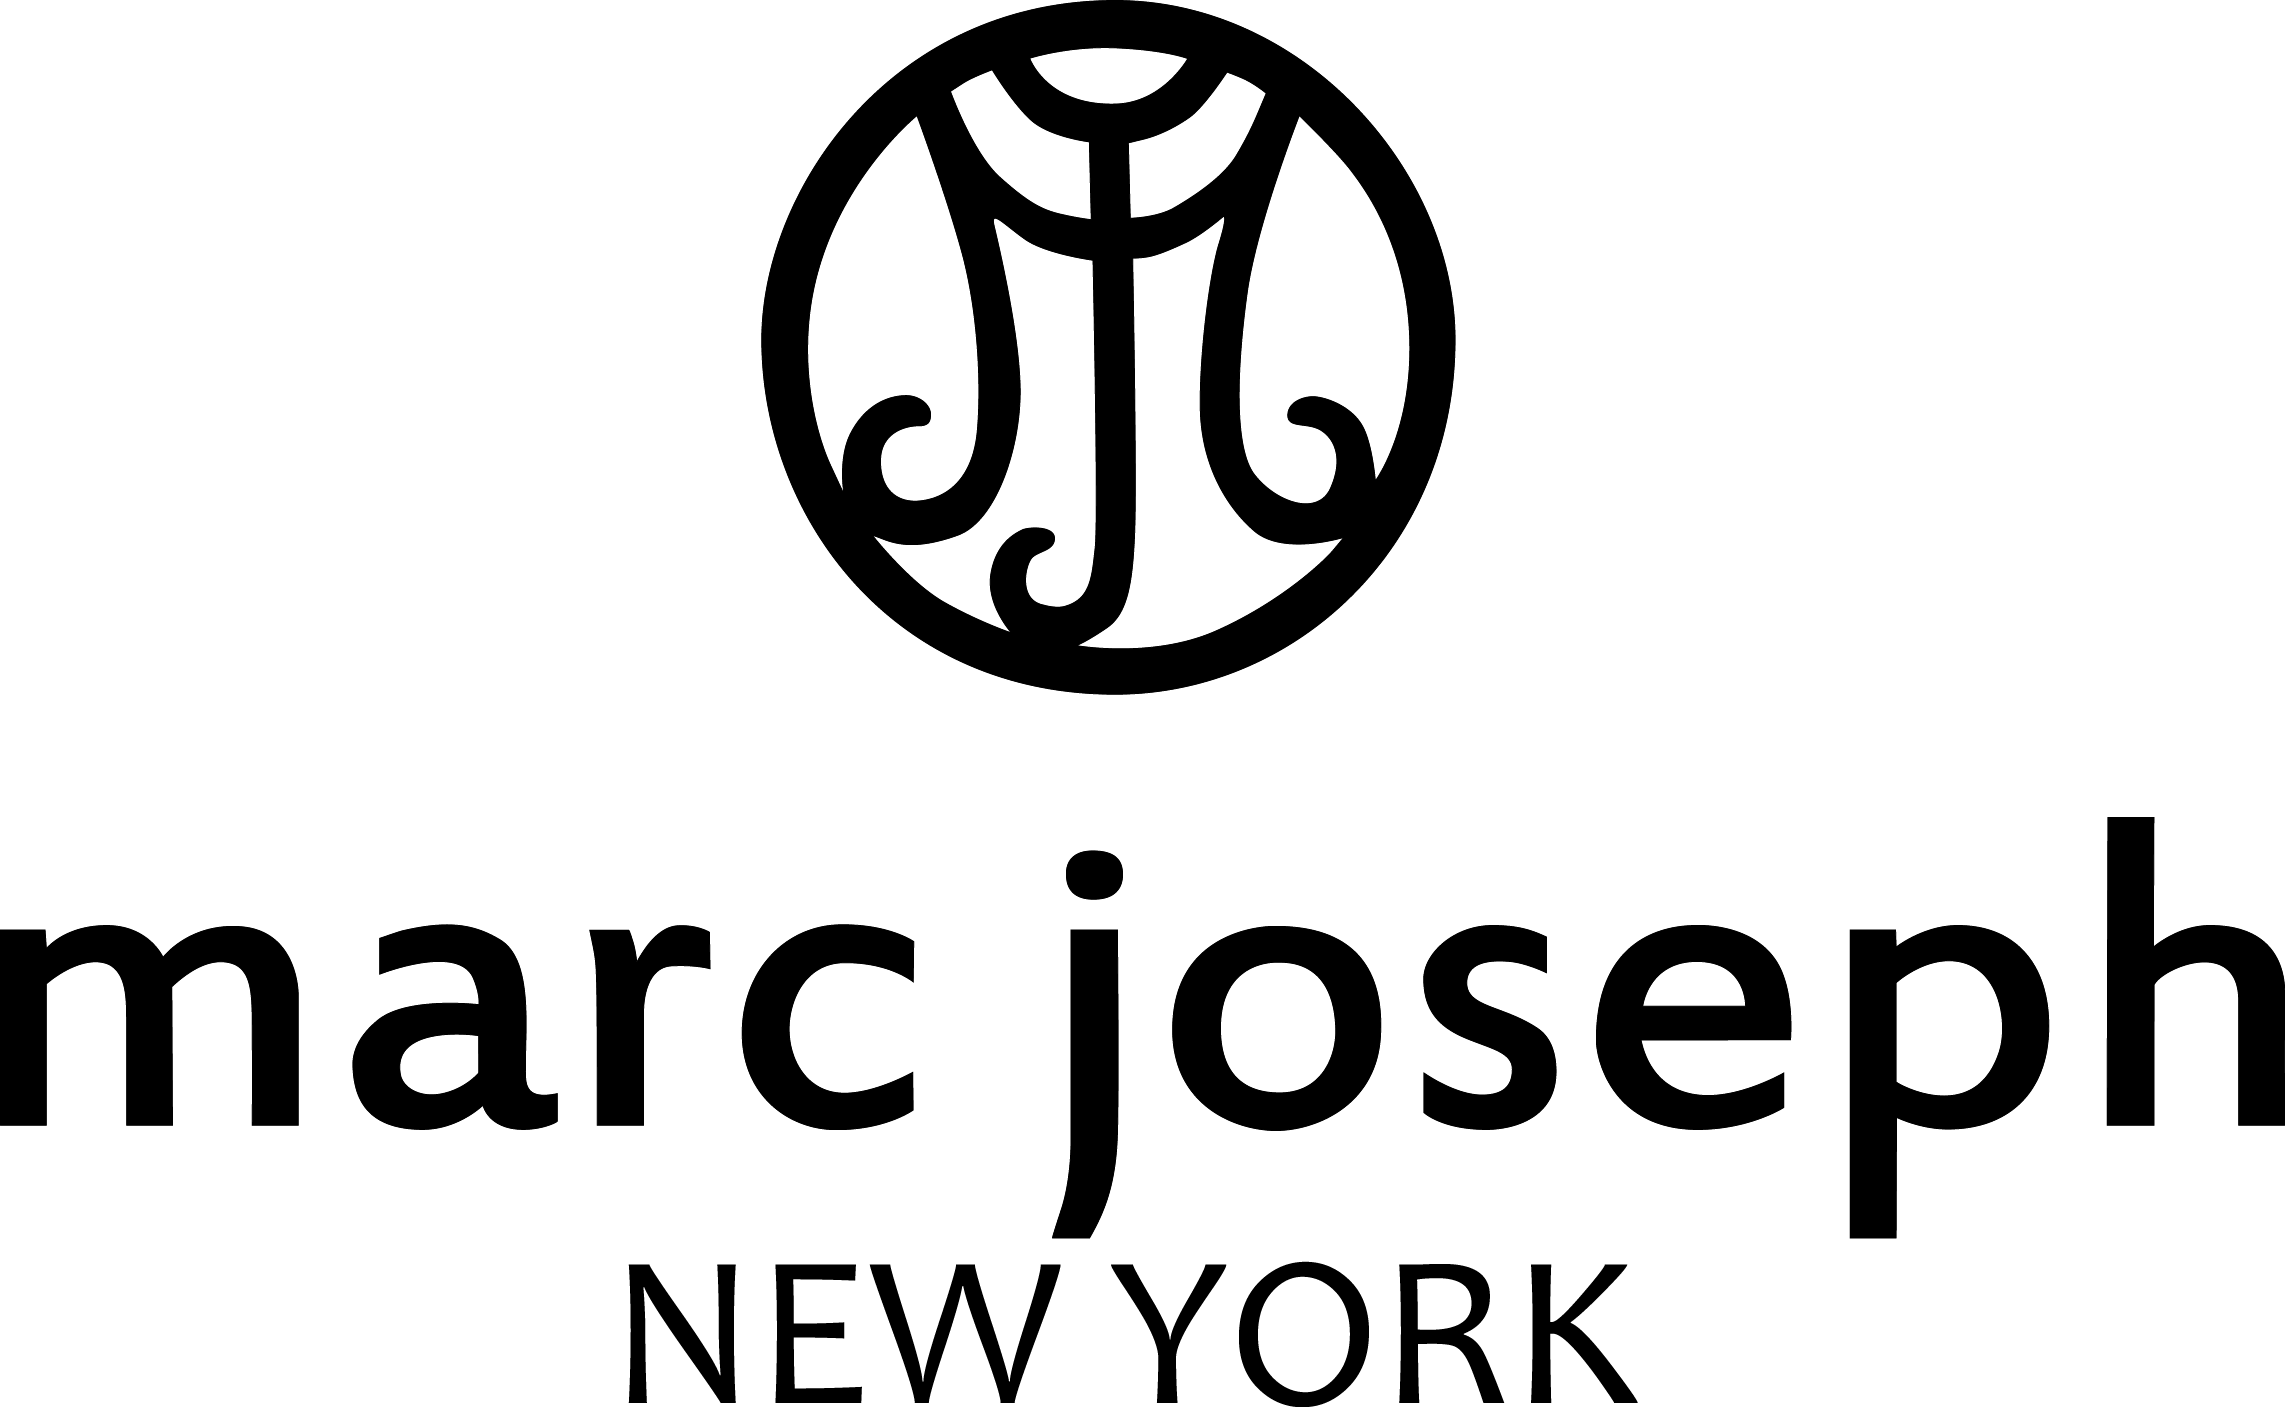 Marc_Joseph_New_York_logo_black